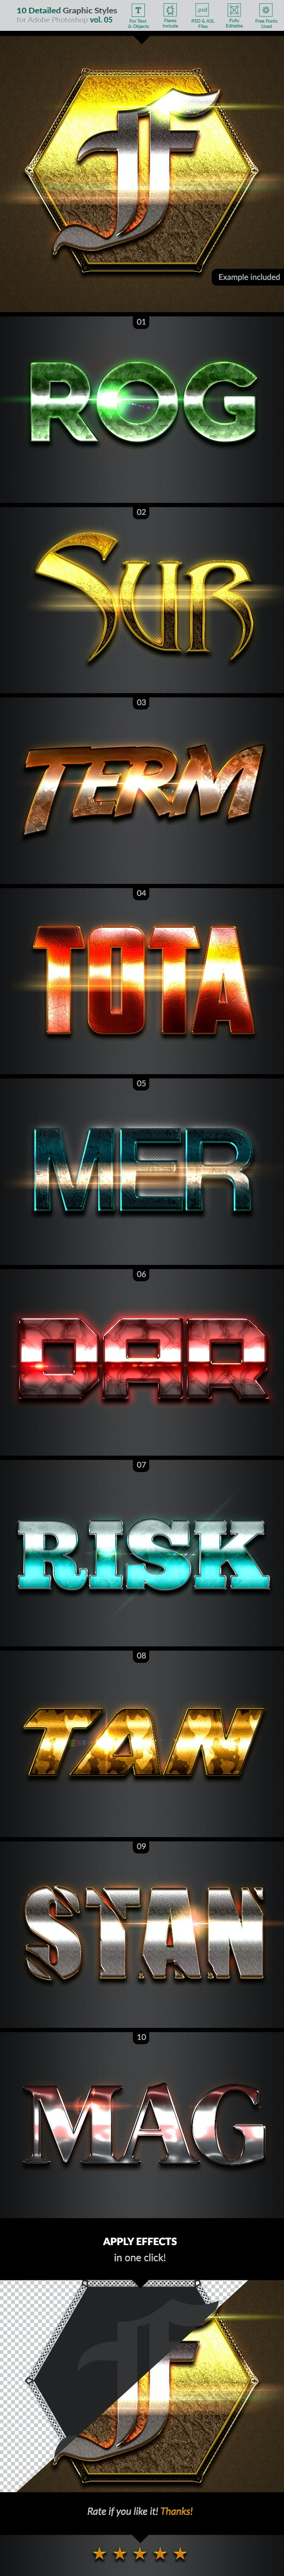 10 Text Effects Vol. 05 - Text Effects Styles